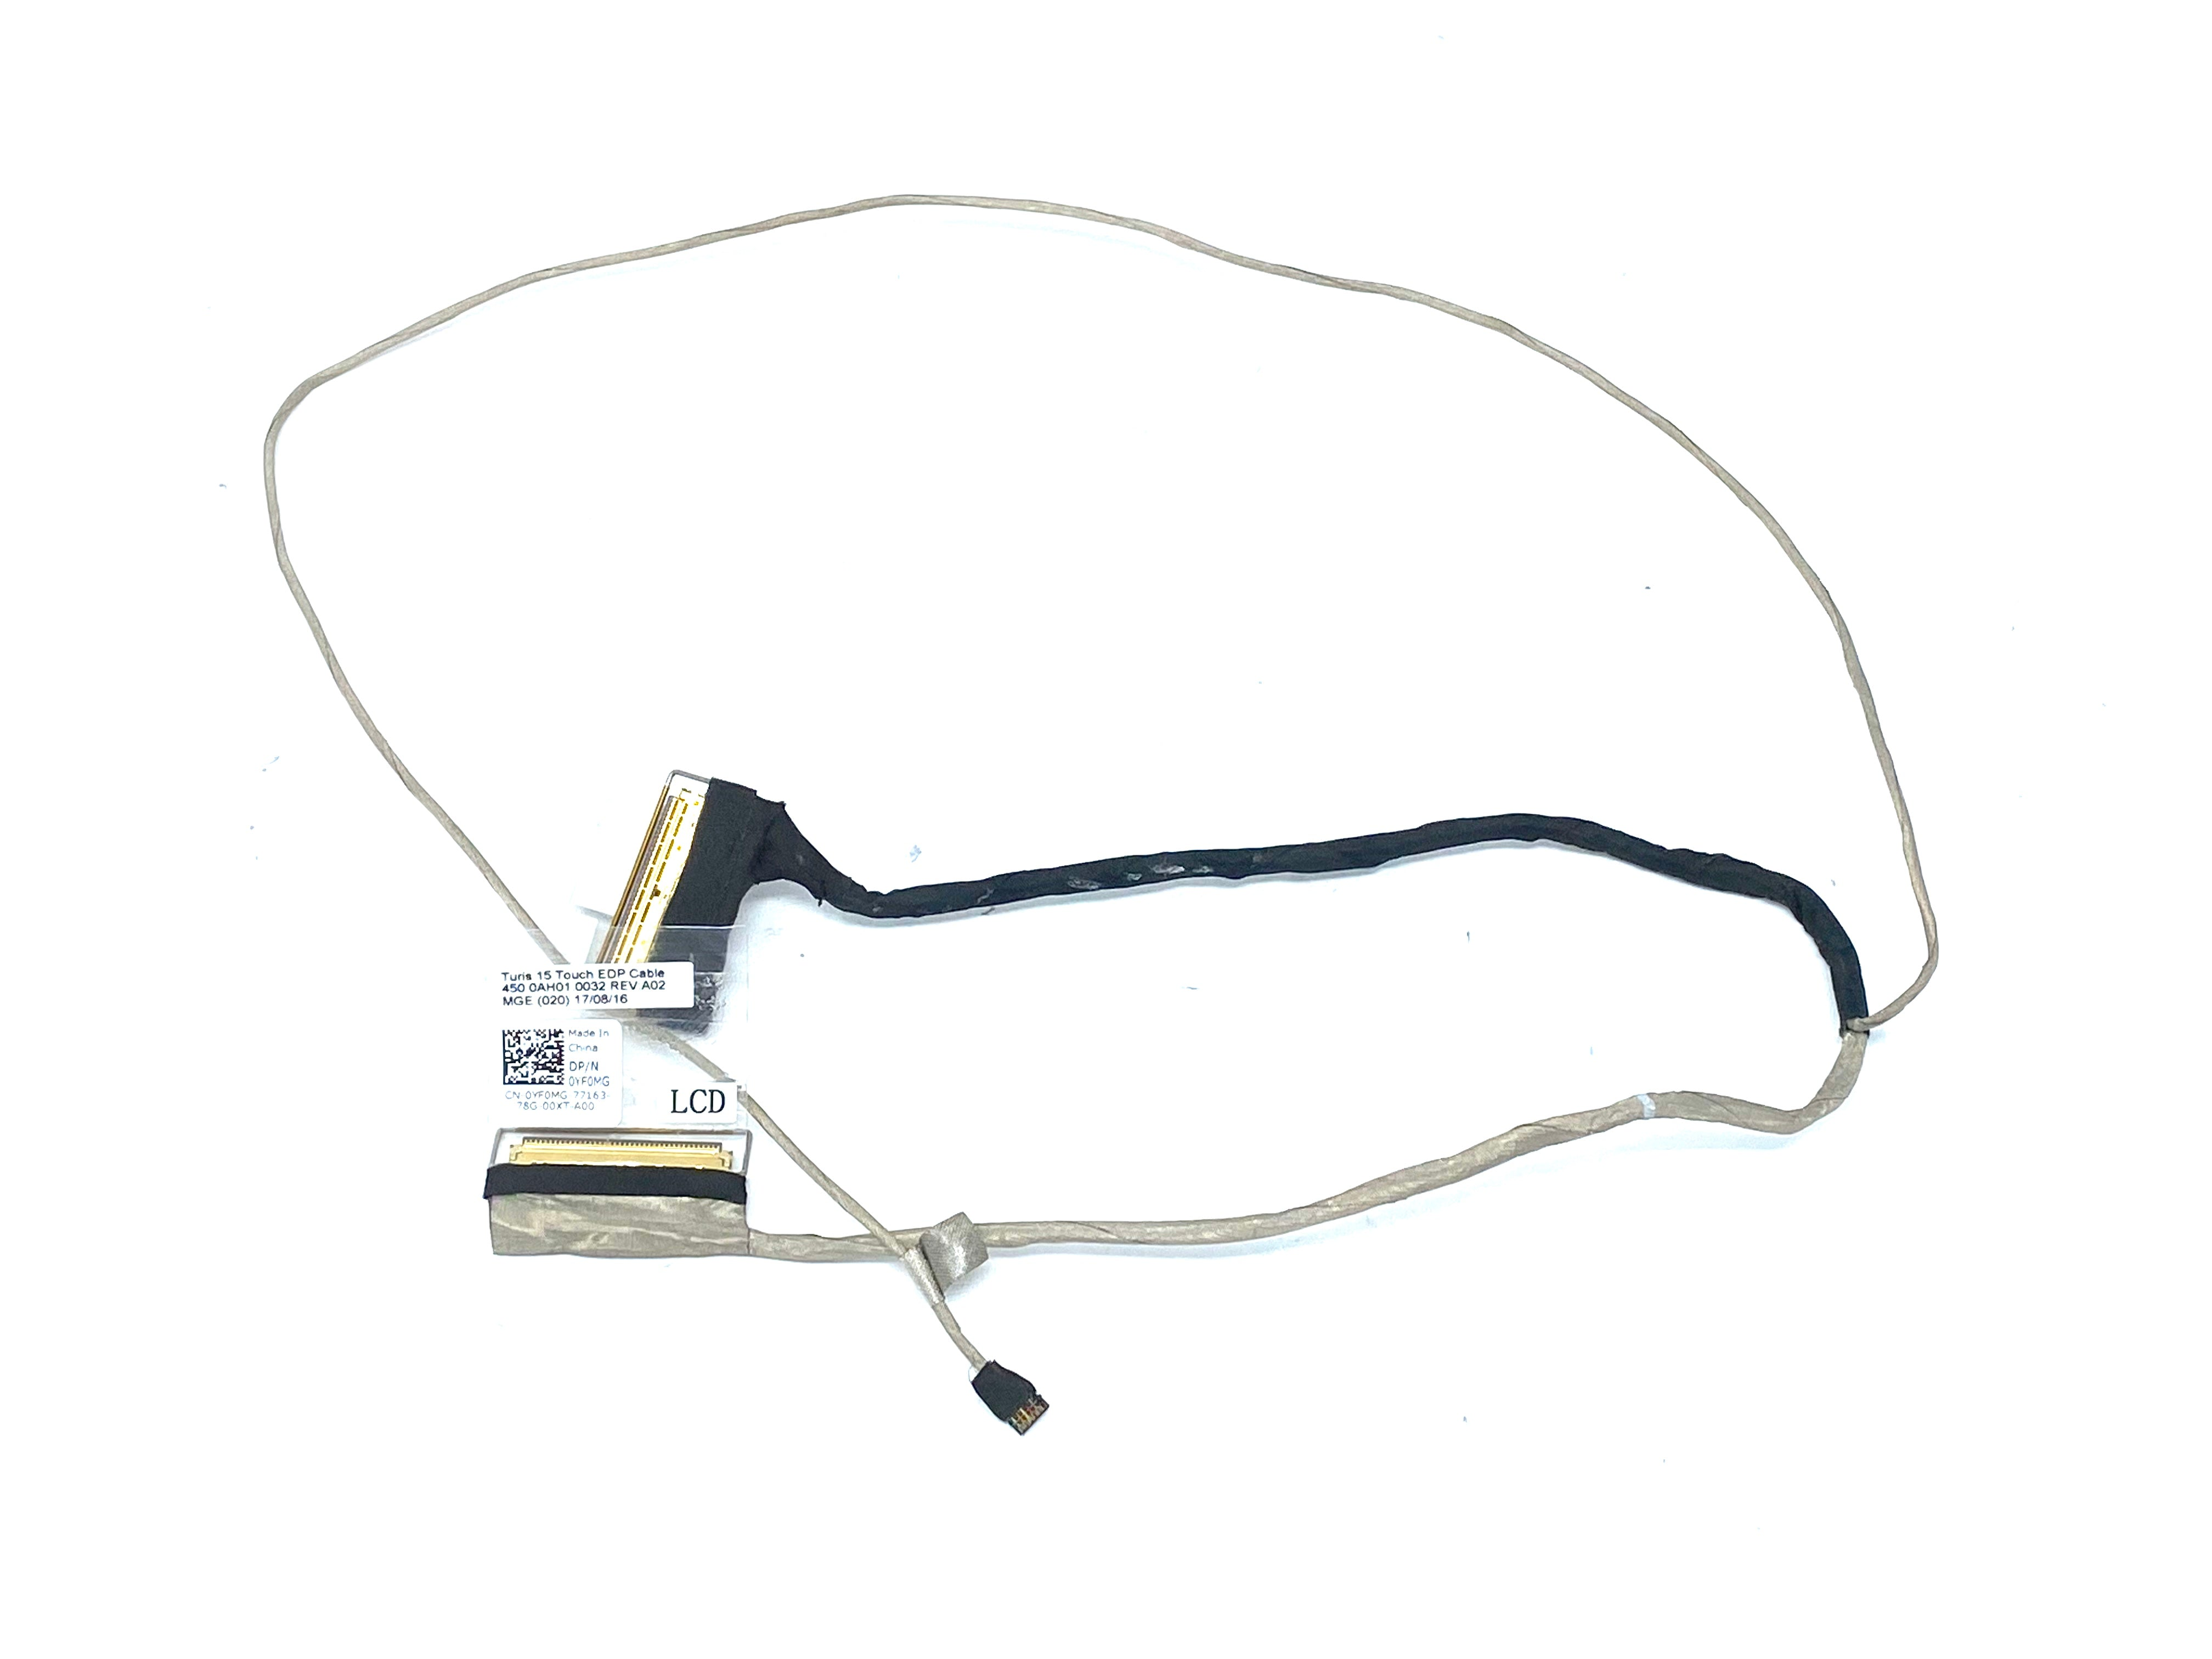 Dell Inspiron 15 3565 / 3567 LCD Cable (For Touch Models - 40 Pin) - 0YF0MG / YF0MG / 450.0AH01.0032.